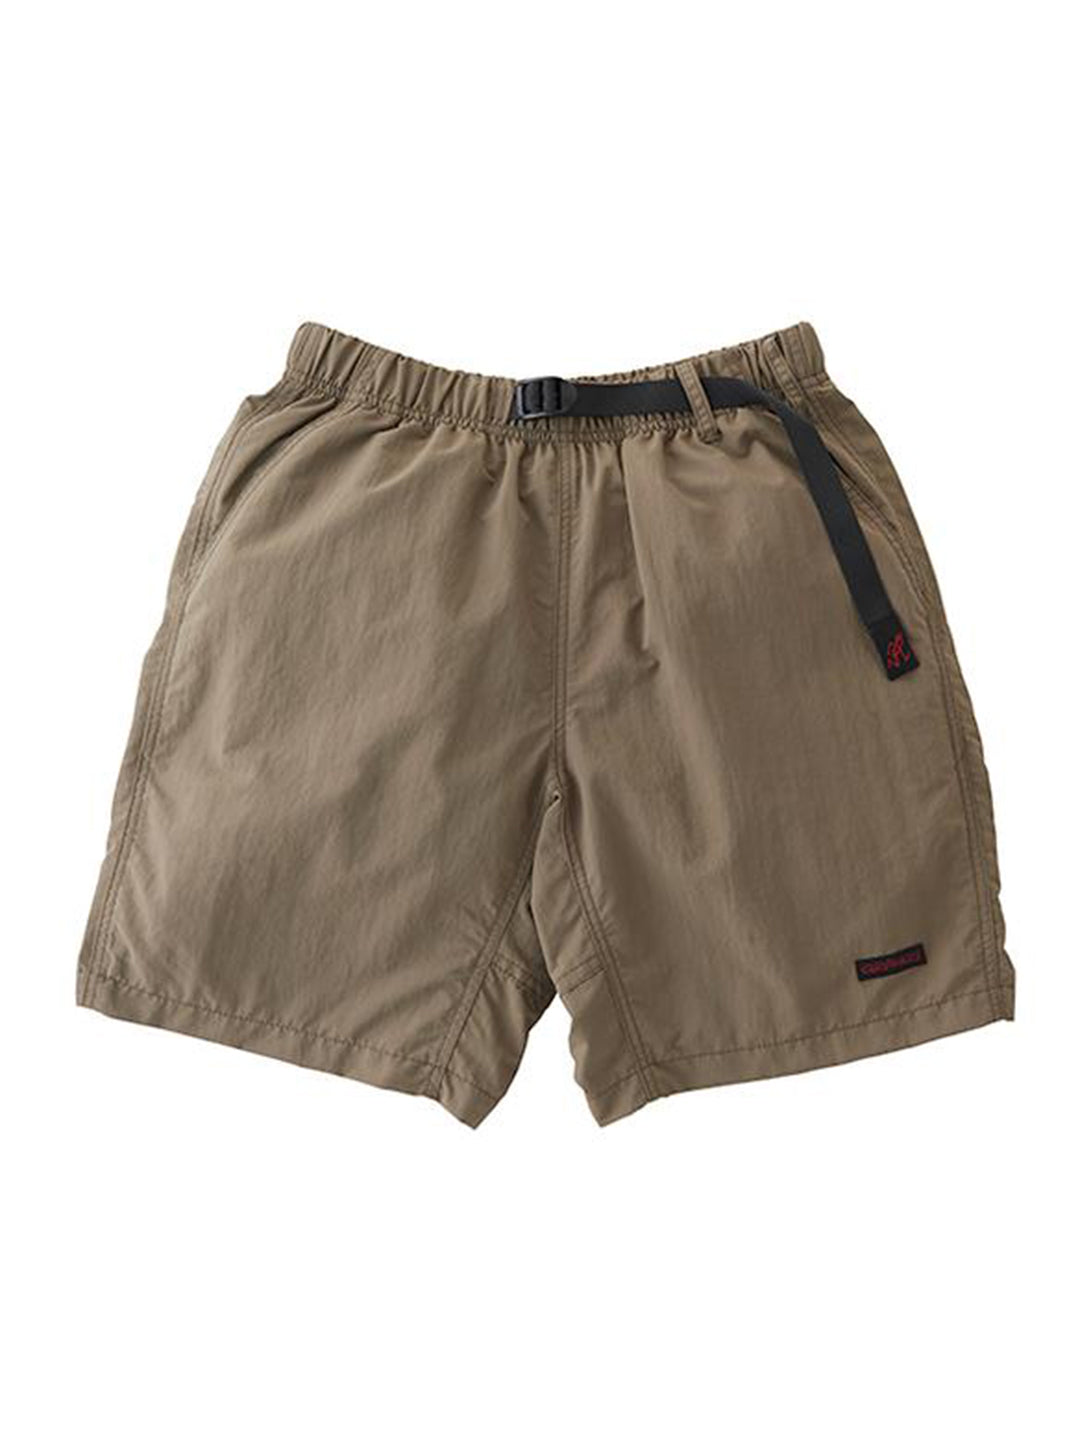 Shell Packable Short - Ash Olive-GRAMICCI-Over the Rainbow